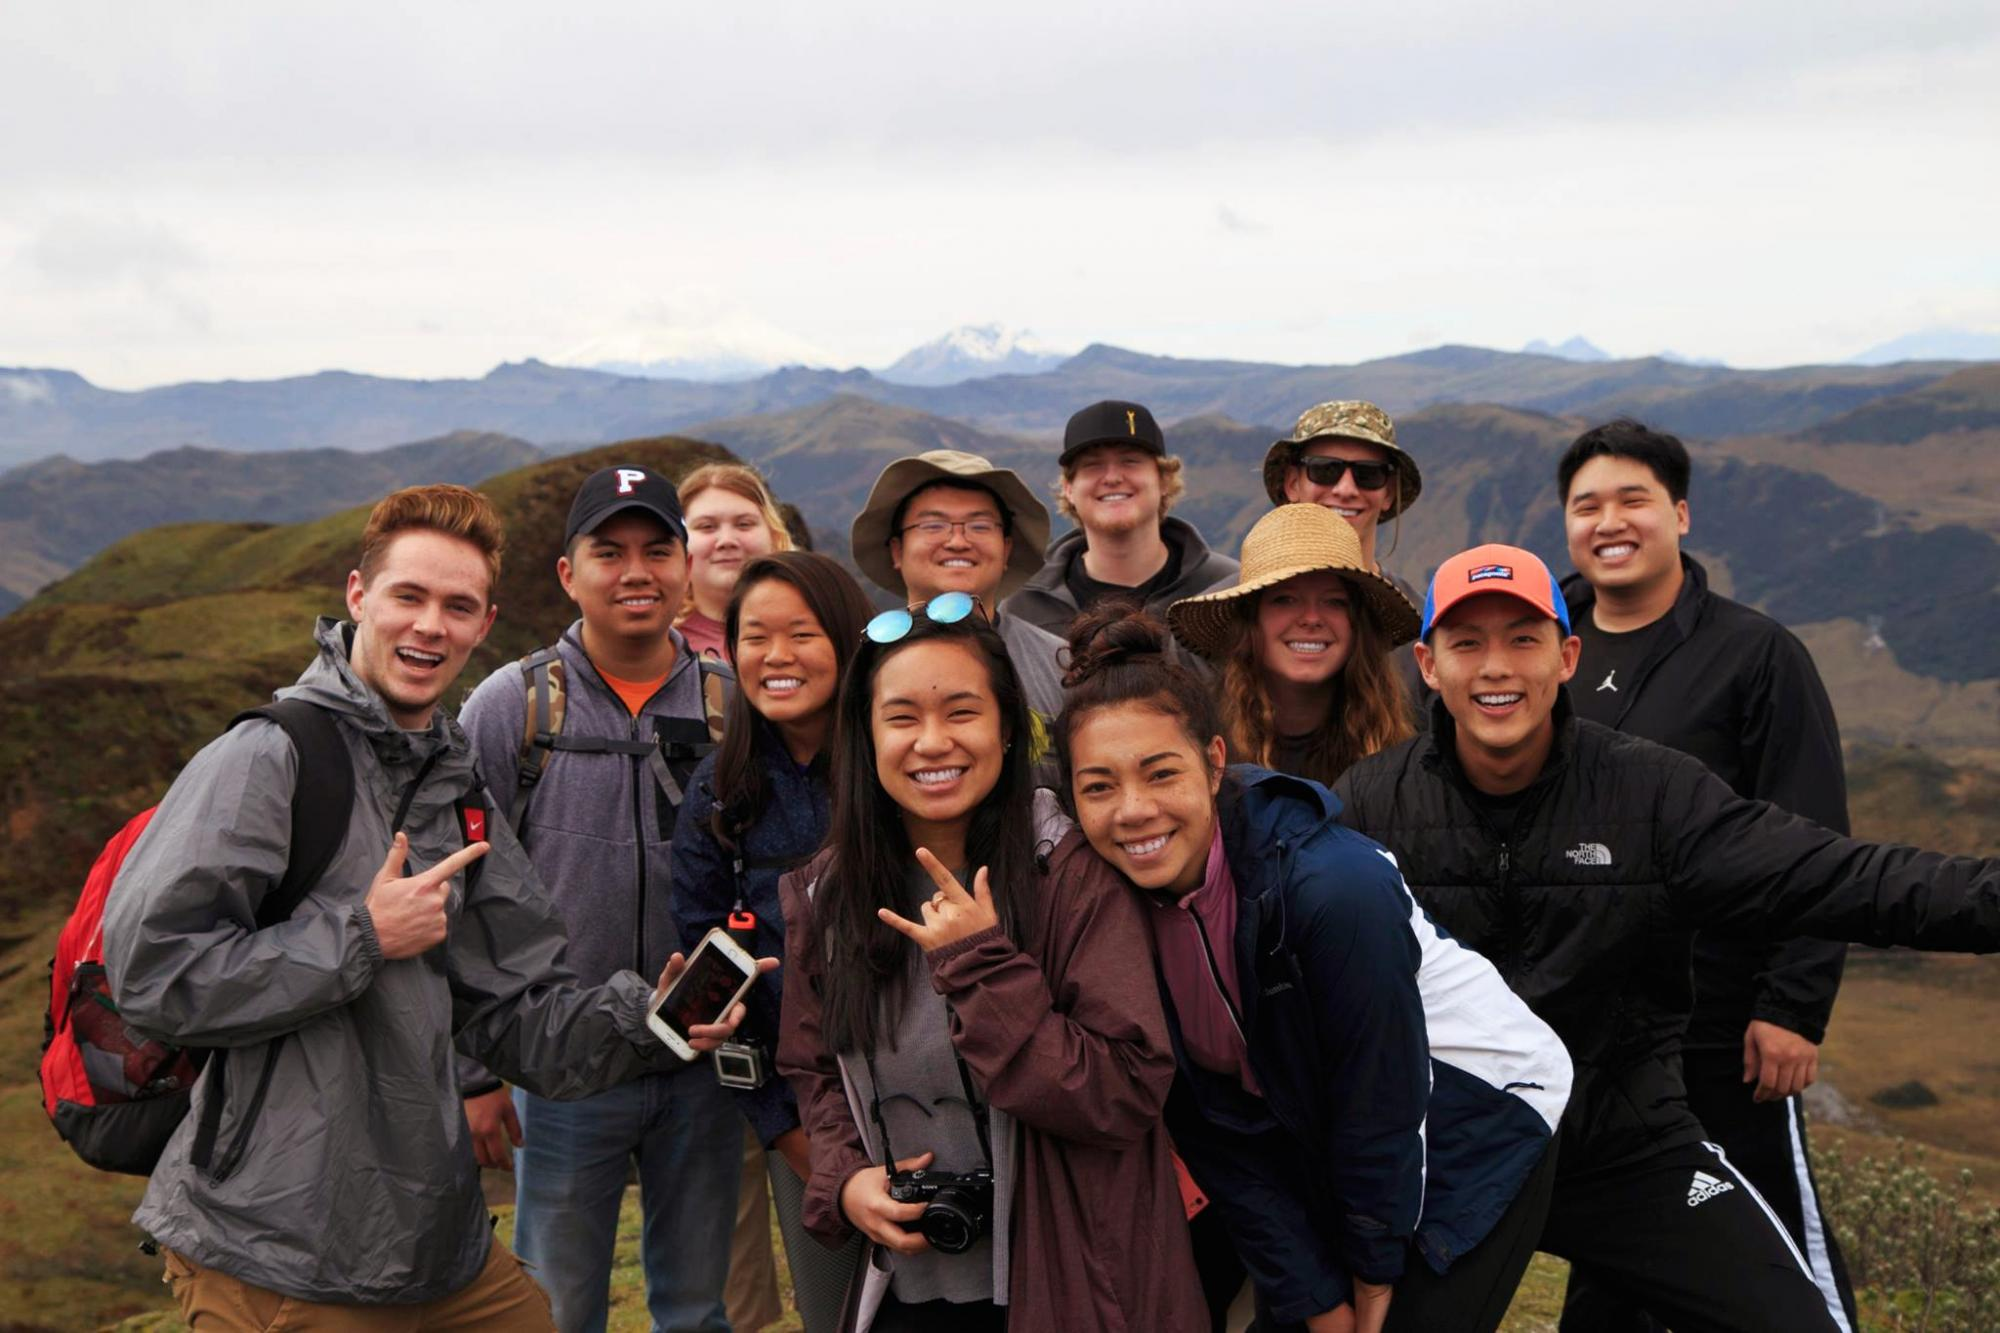 Students abroad smile at the camera with mountains and clouds in the background.